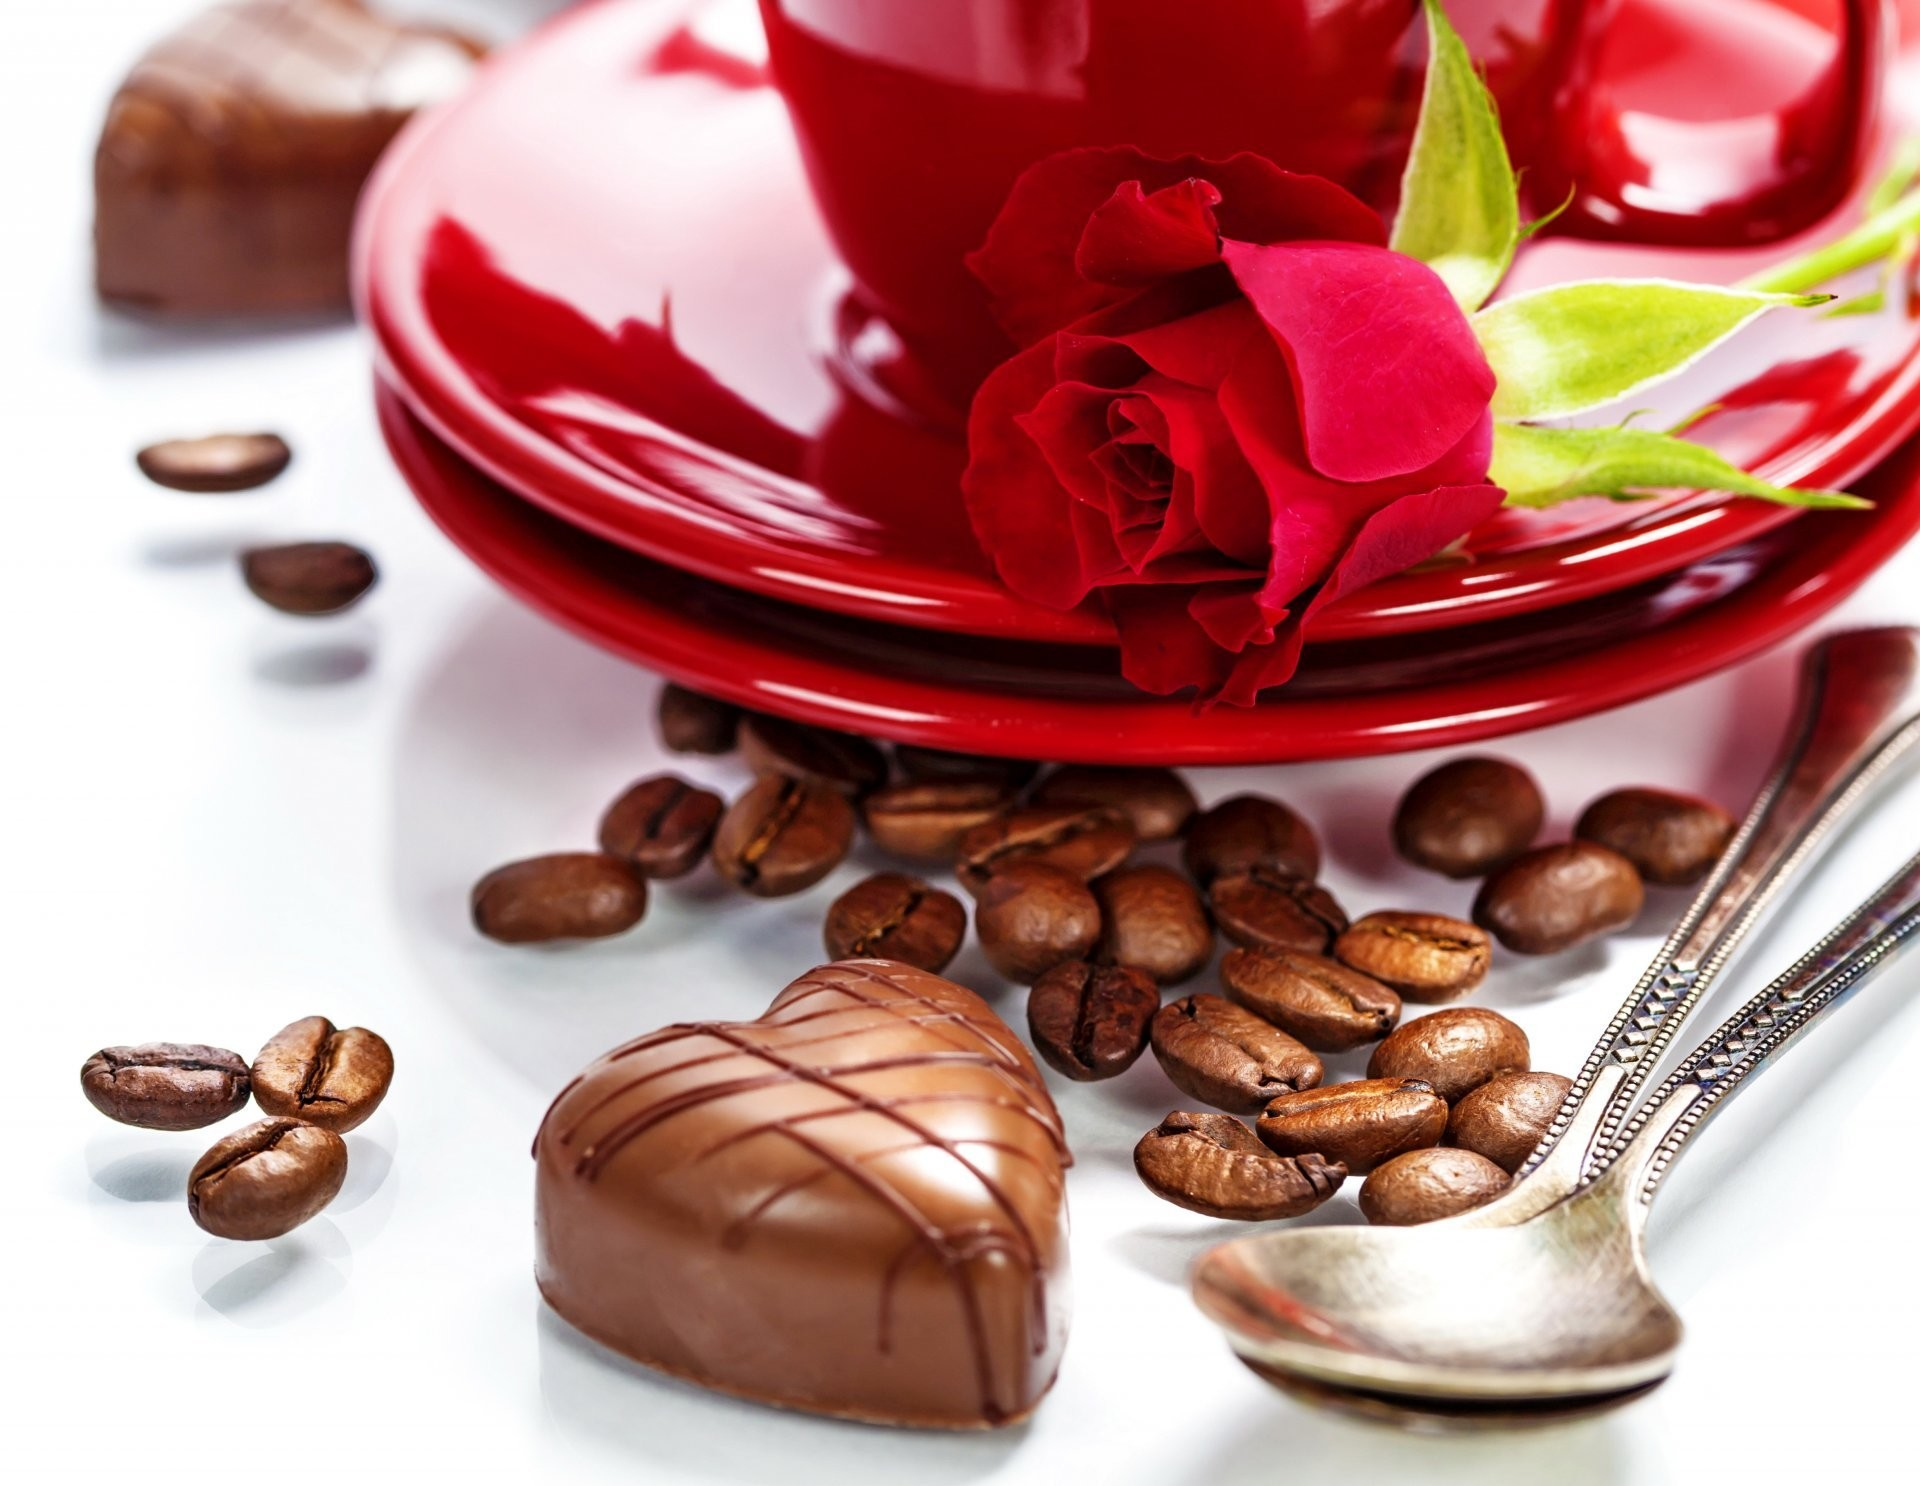 valentine's day love heart romantic roses rose heart candy chocolate coffee  dish spoon